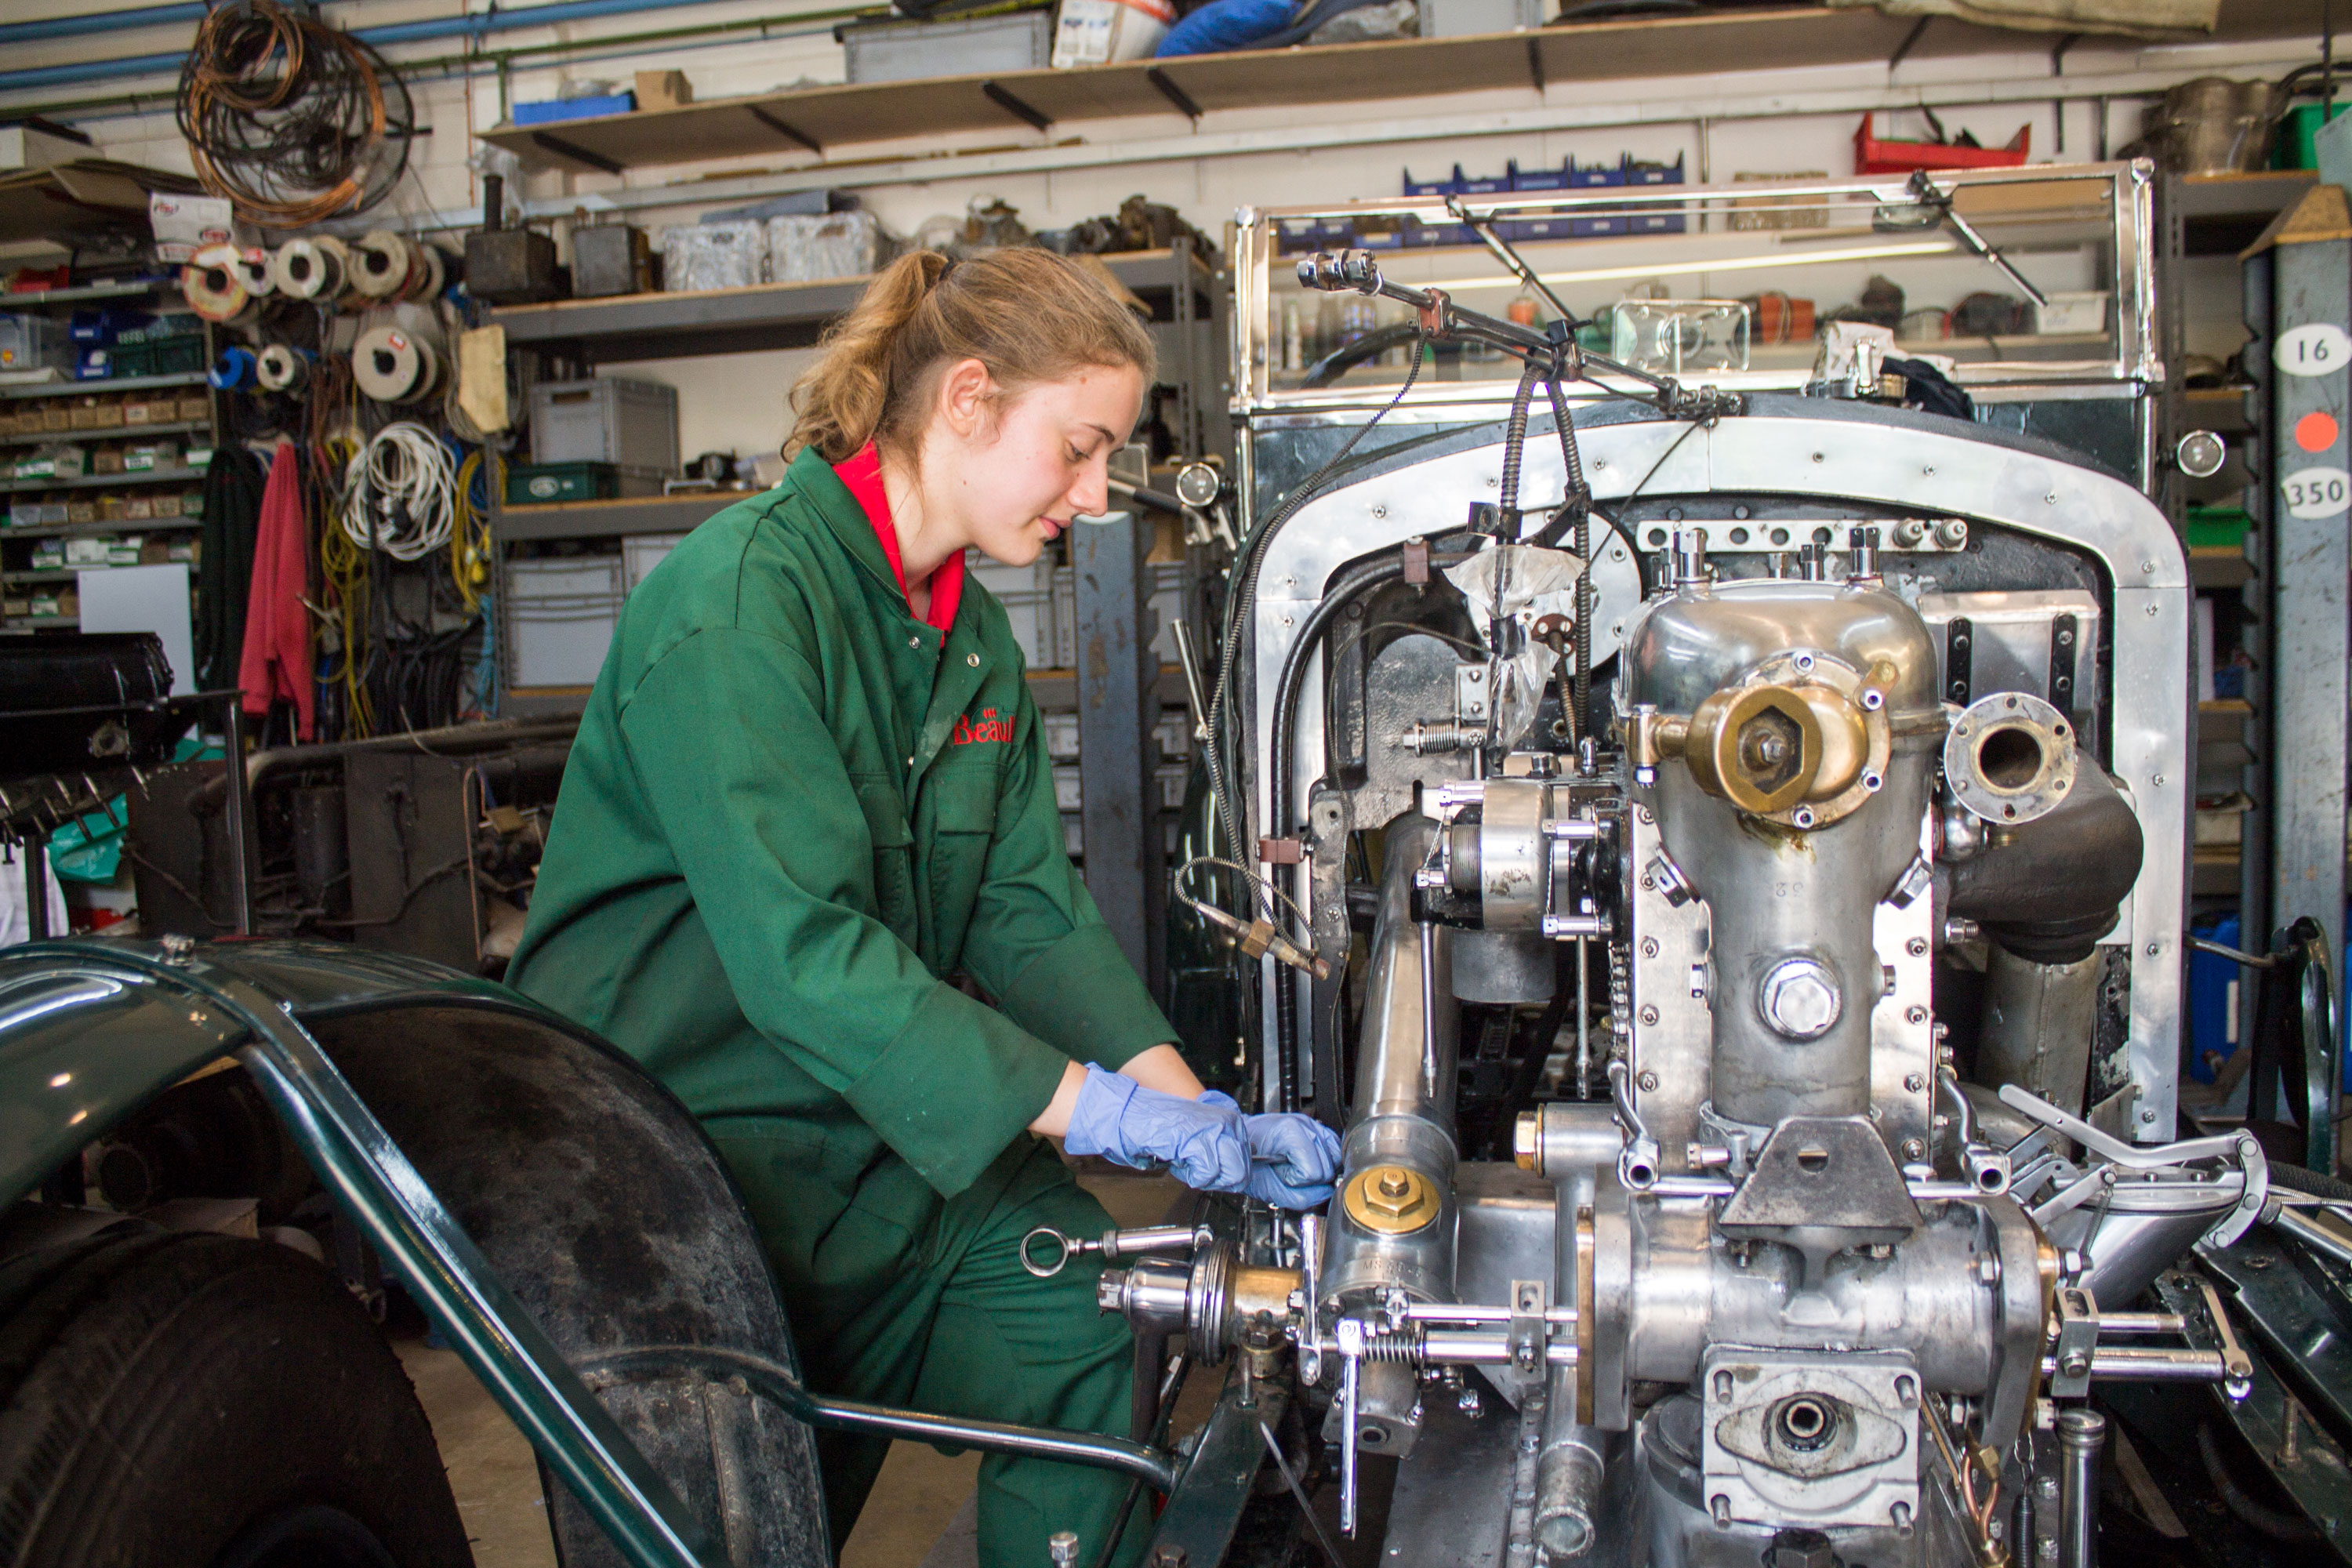 Workshop apprentice at the National Motor Museum working on a car engine